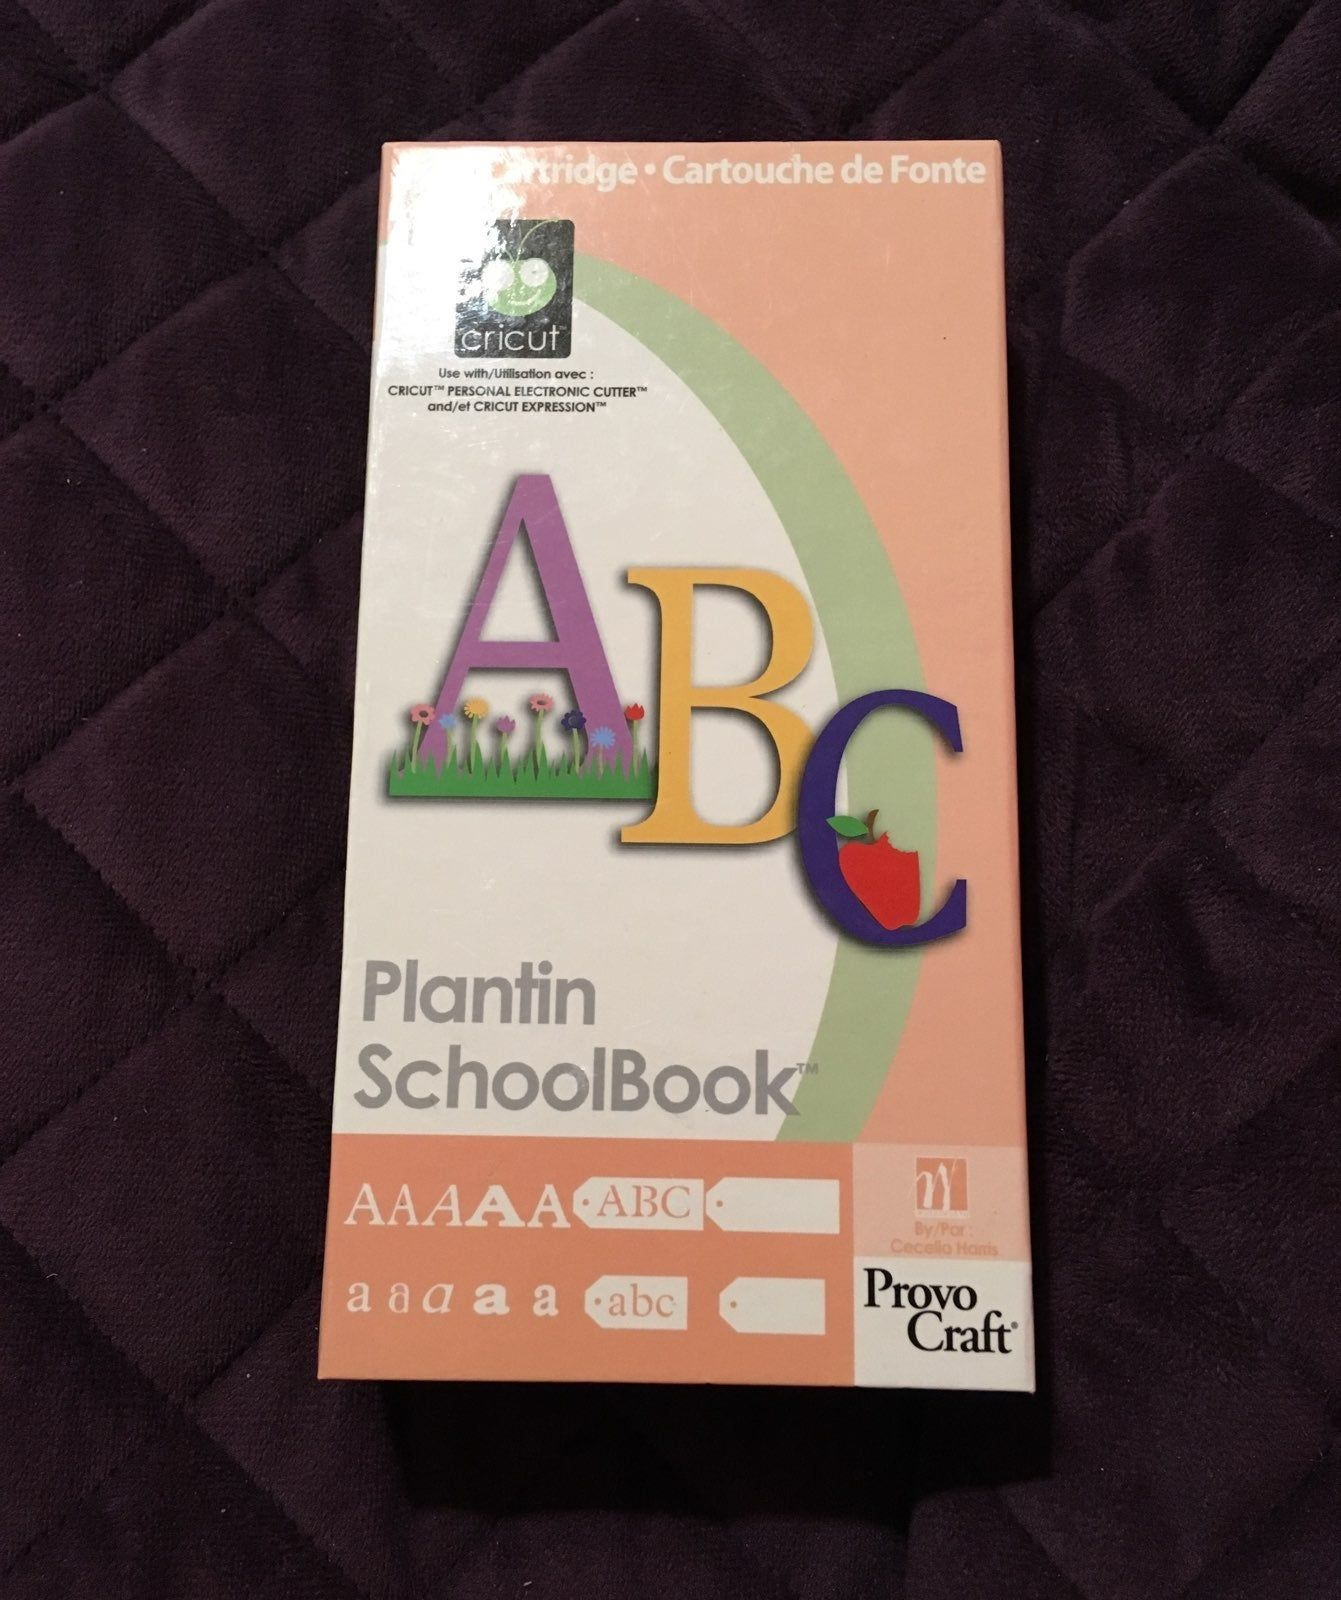 Plantin Schoolbook Cricut Cartridge Is Used I Do Not Know If This Is Linked So Do Not Buy This If You Are Using An Cricut Cartridges Cricut Expression Cricut